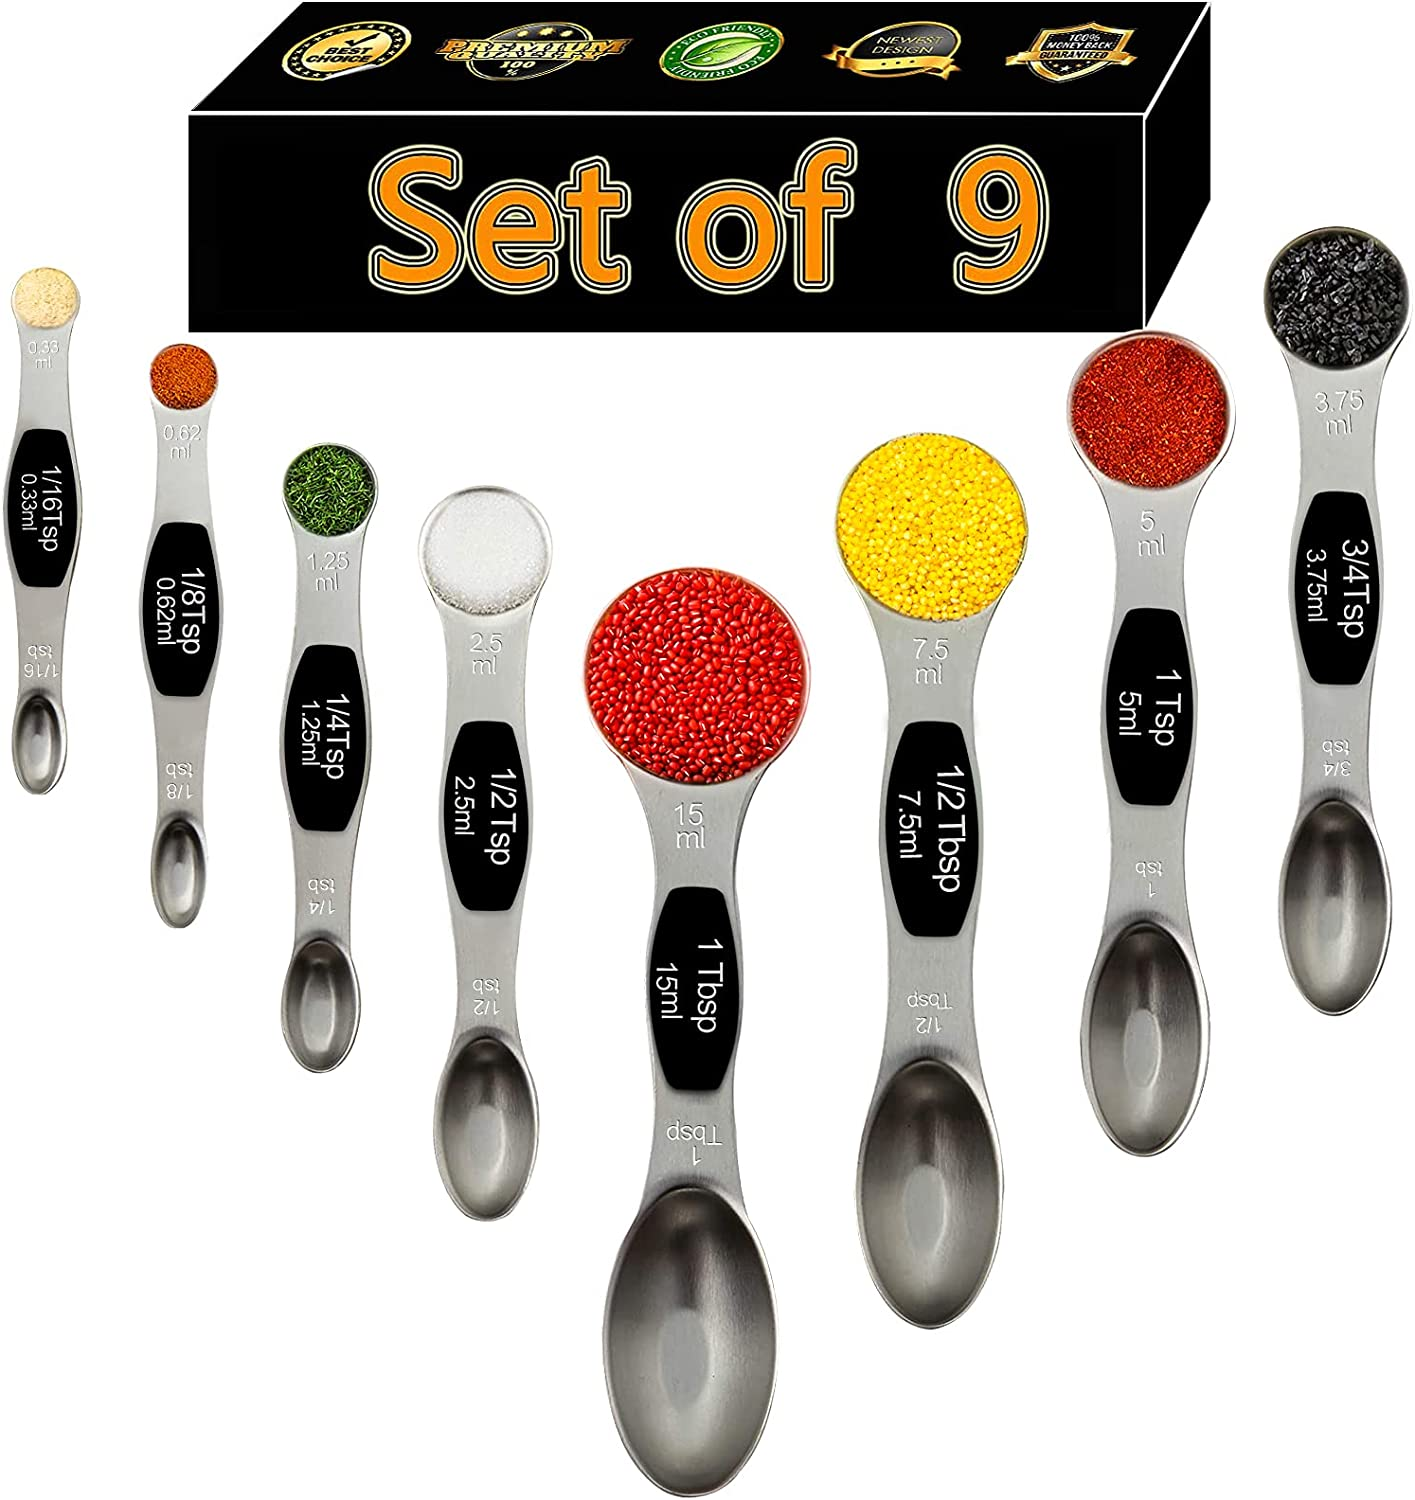 Magnetic Measuring Spoons Set Dual Sided 18/8 Stainless Steel Teaspoons Stackable fits in Spice Jars or Liquid,Set of 9